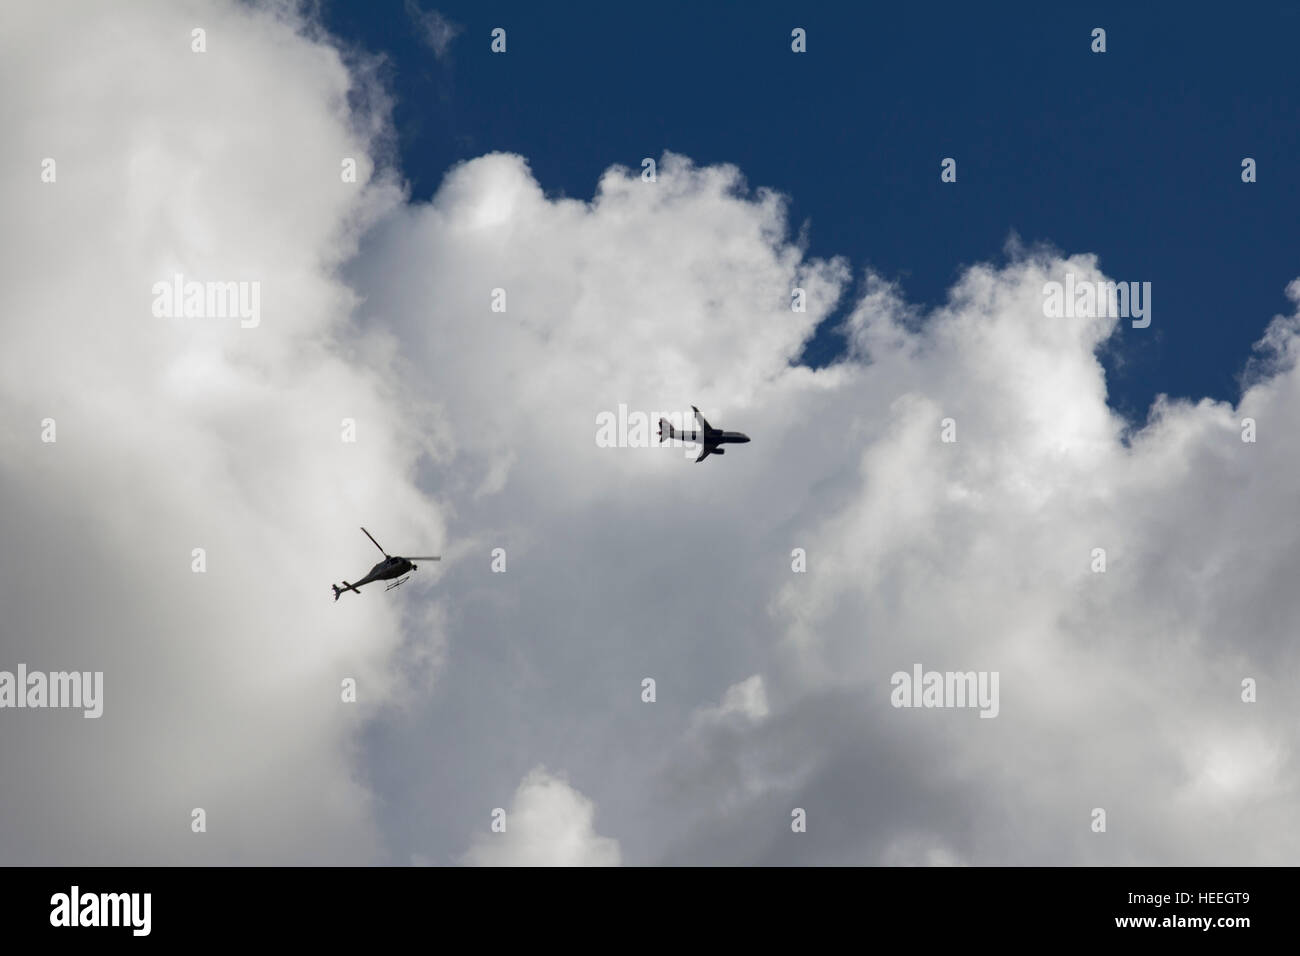 A Helicopter and a plane flying above london - Stock Image